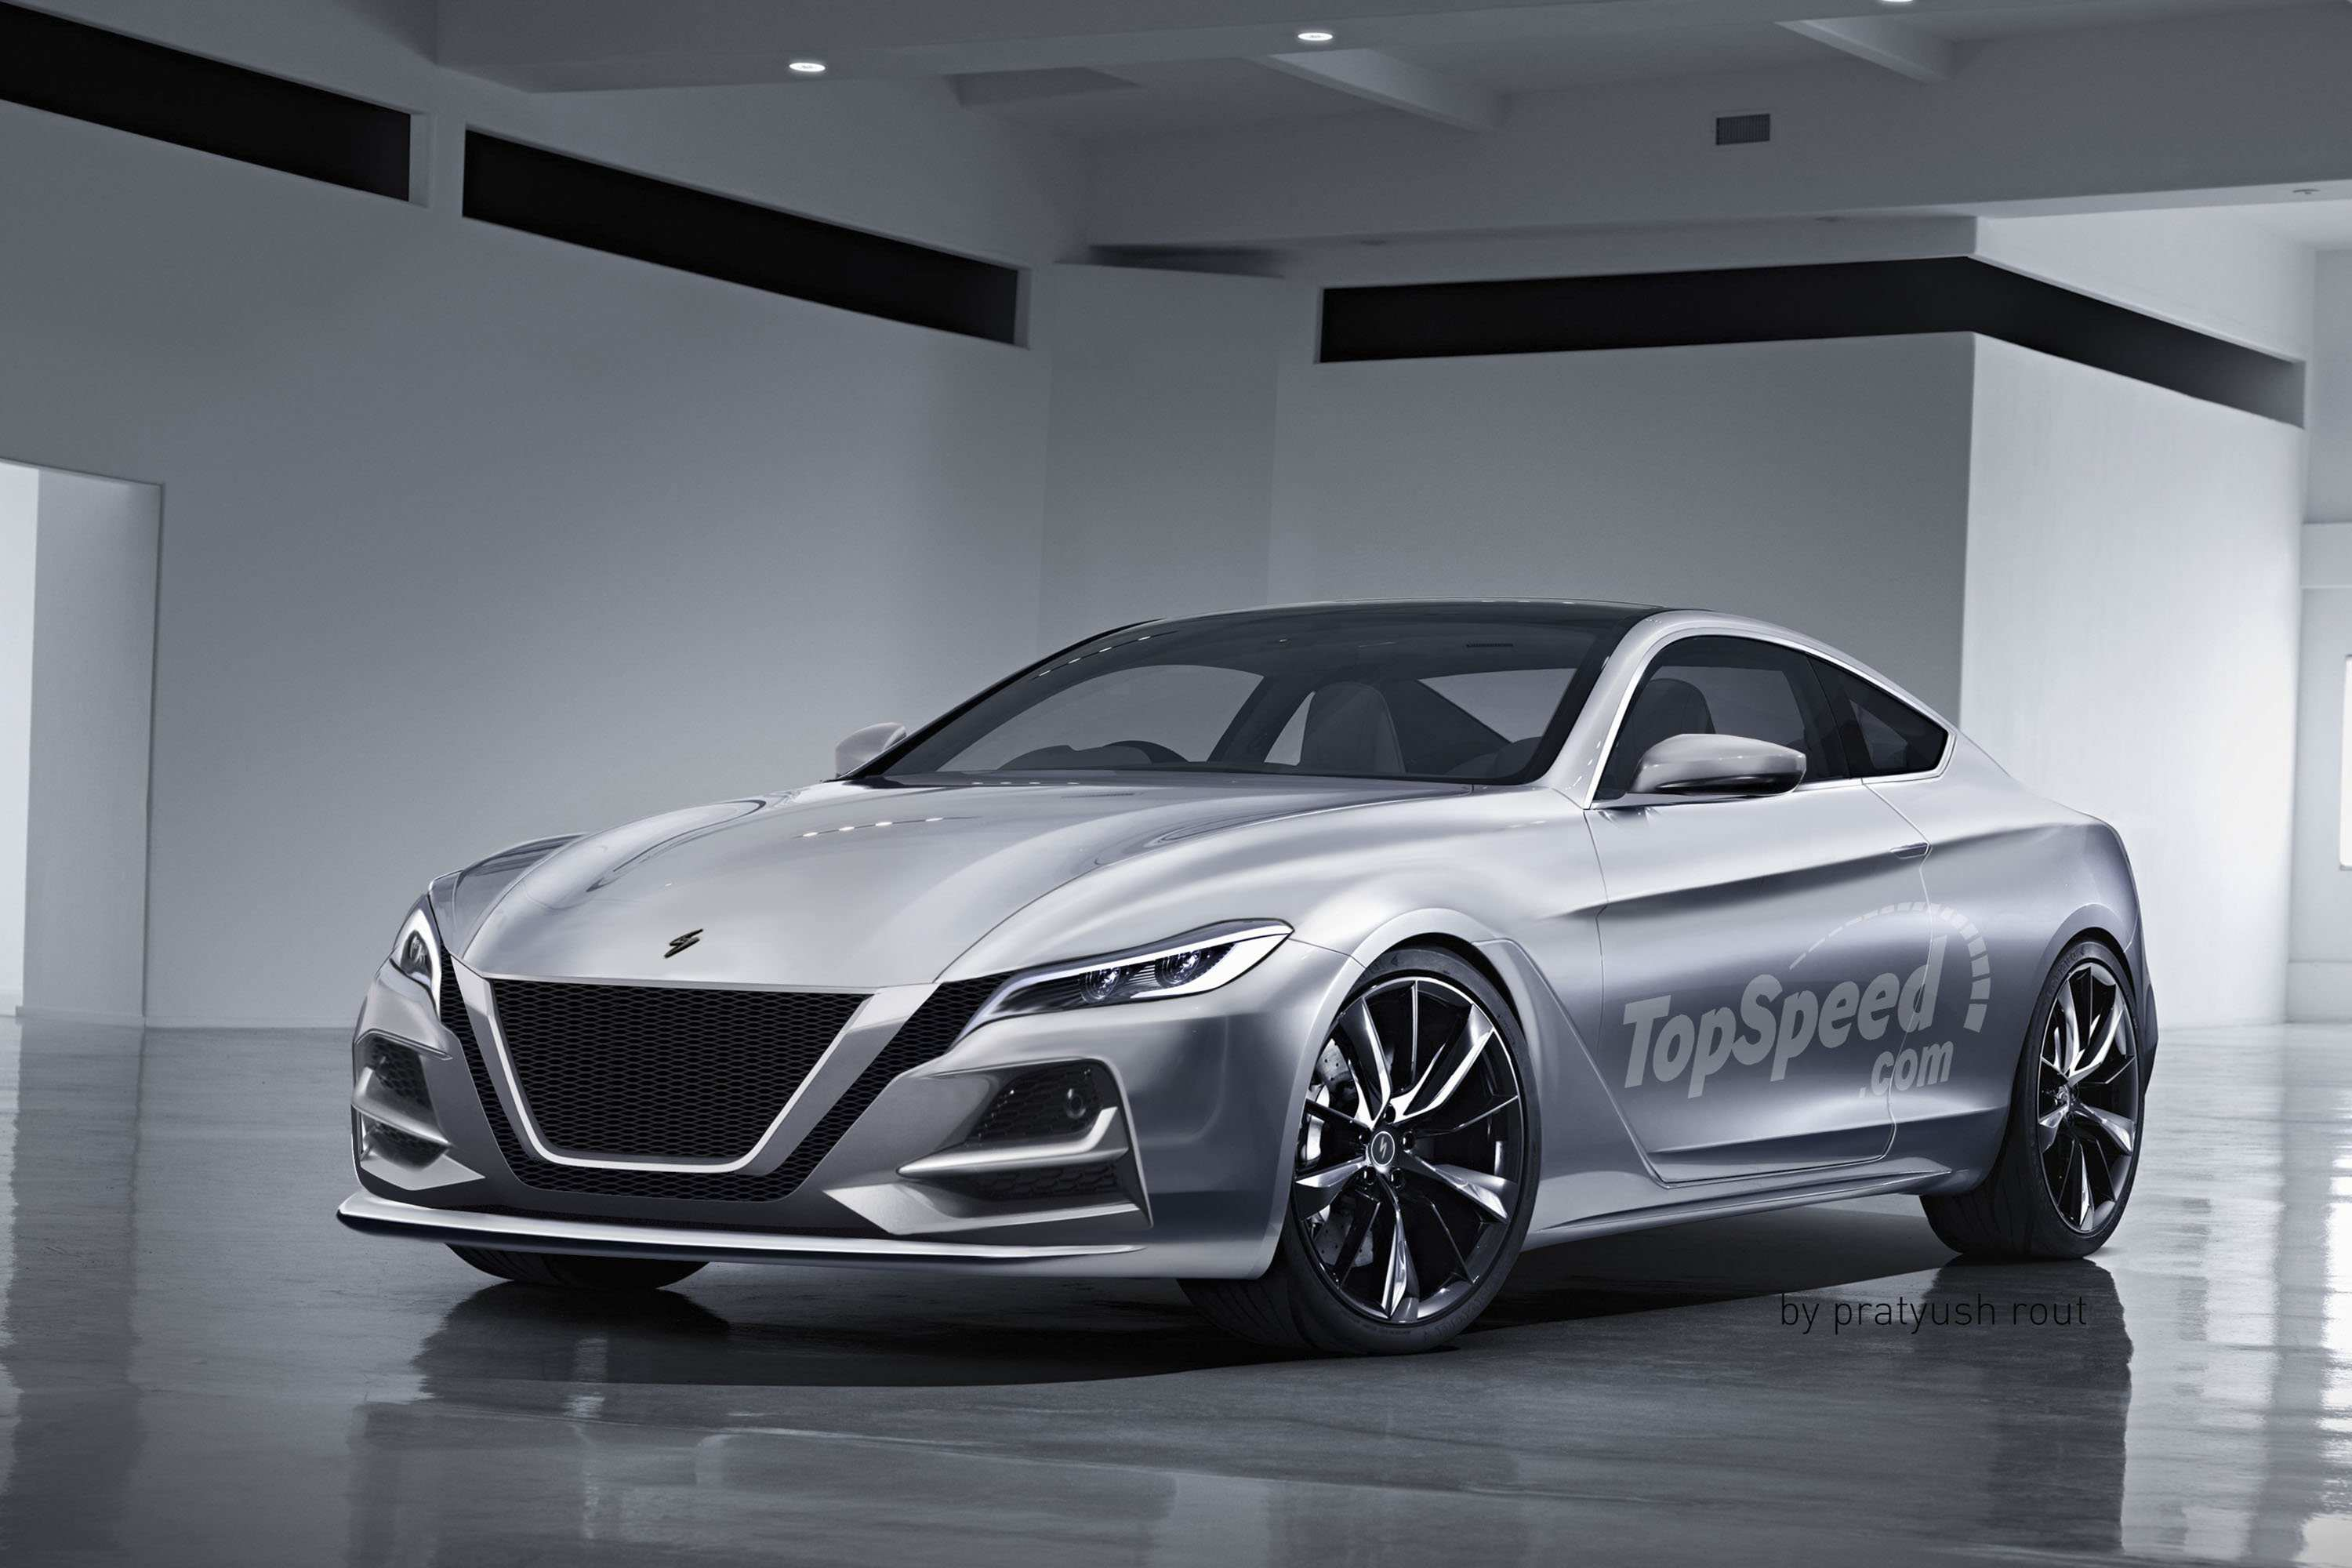 73 Best Nissan Concept 2020 Top Speed New Review